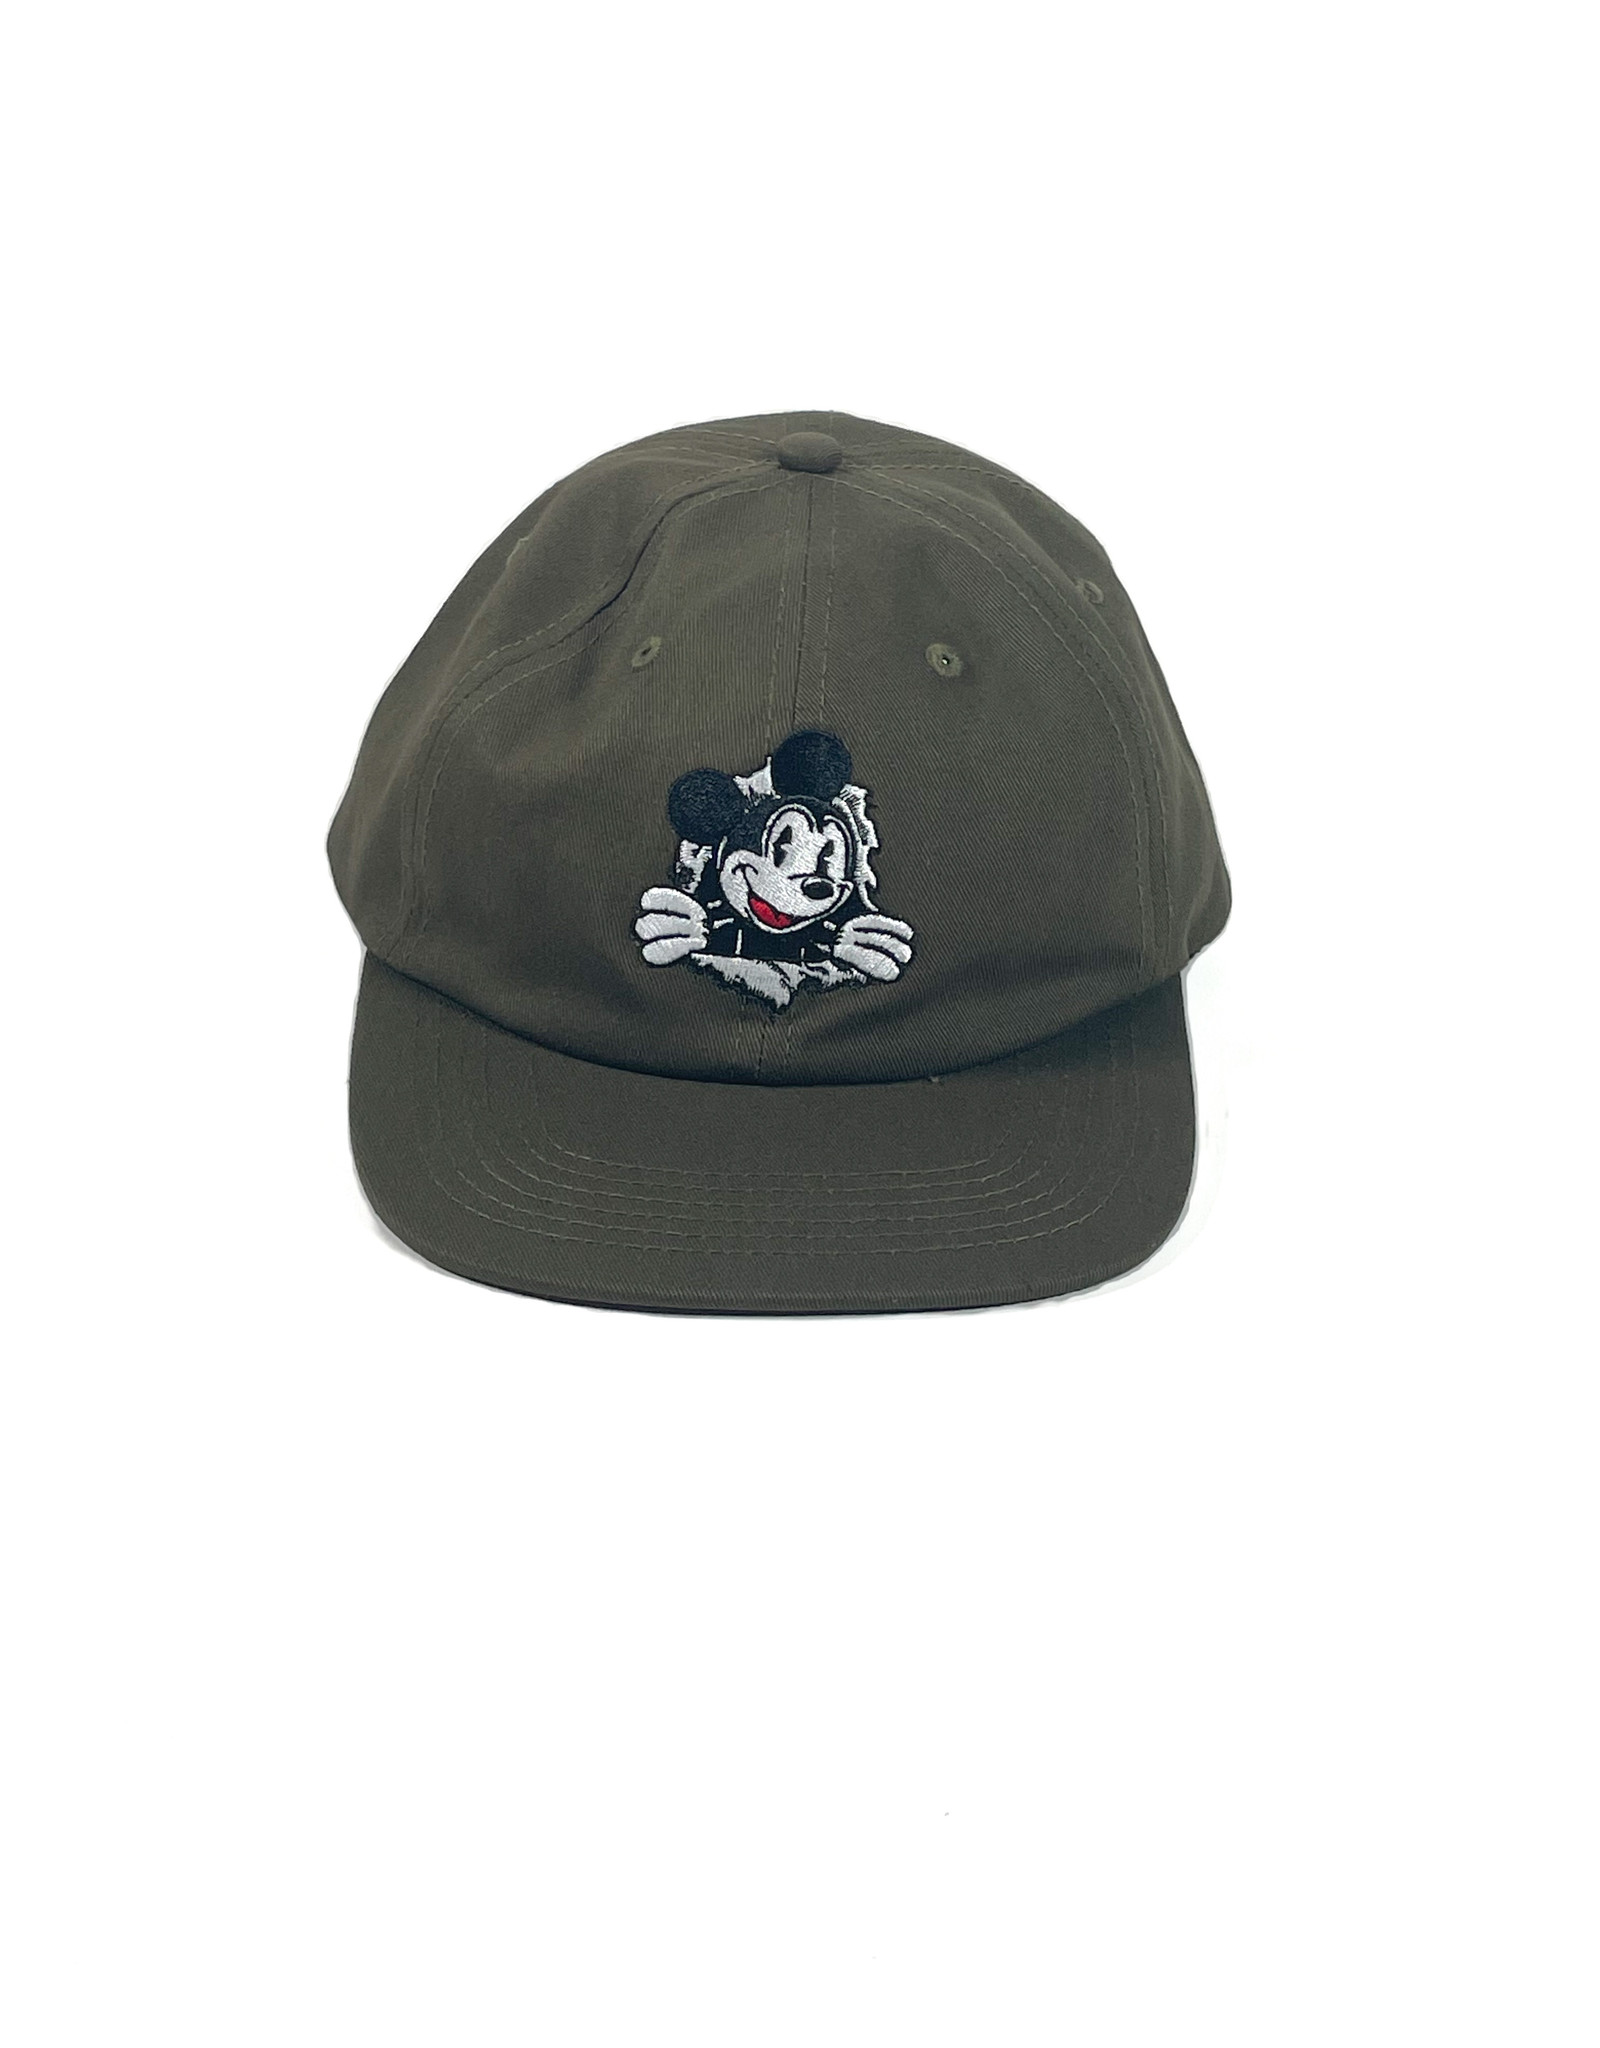 KINGSWELL KINGSWELL MOUSE RIPPER 6 PANEL HAT - OLIVE